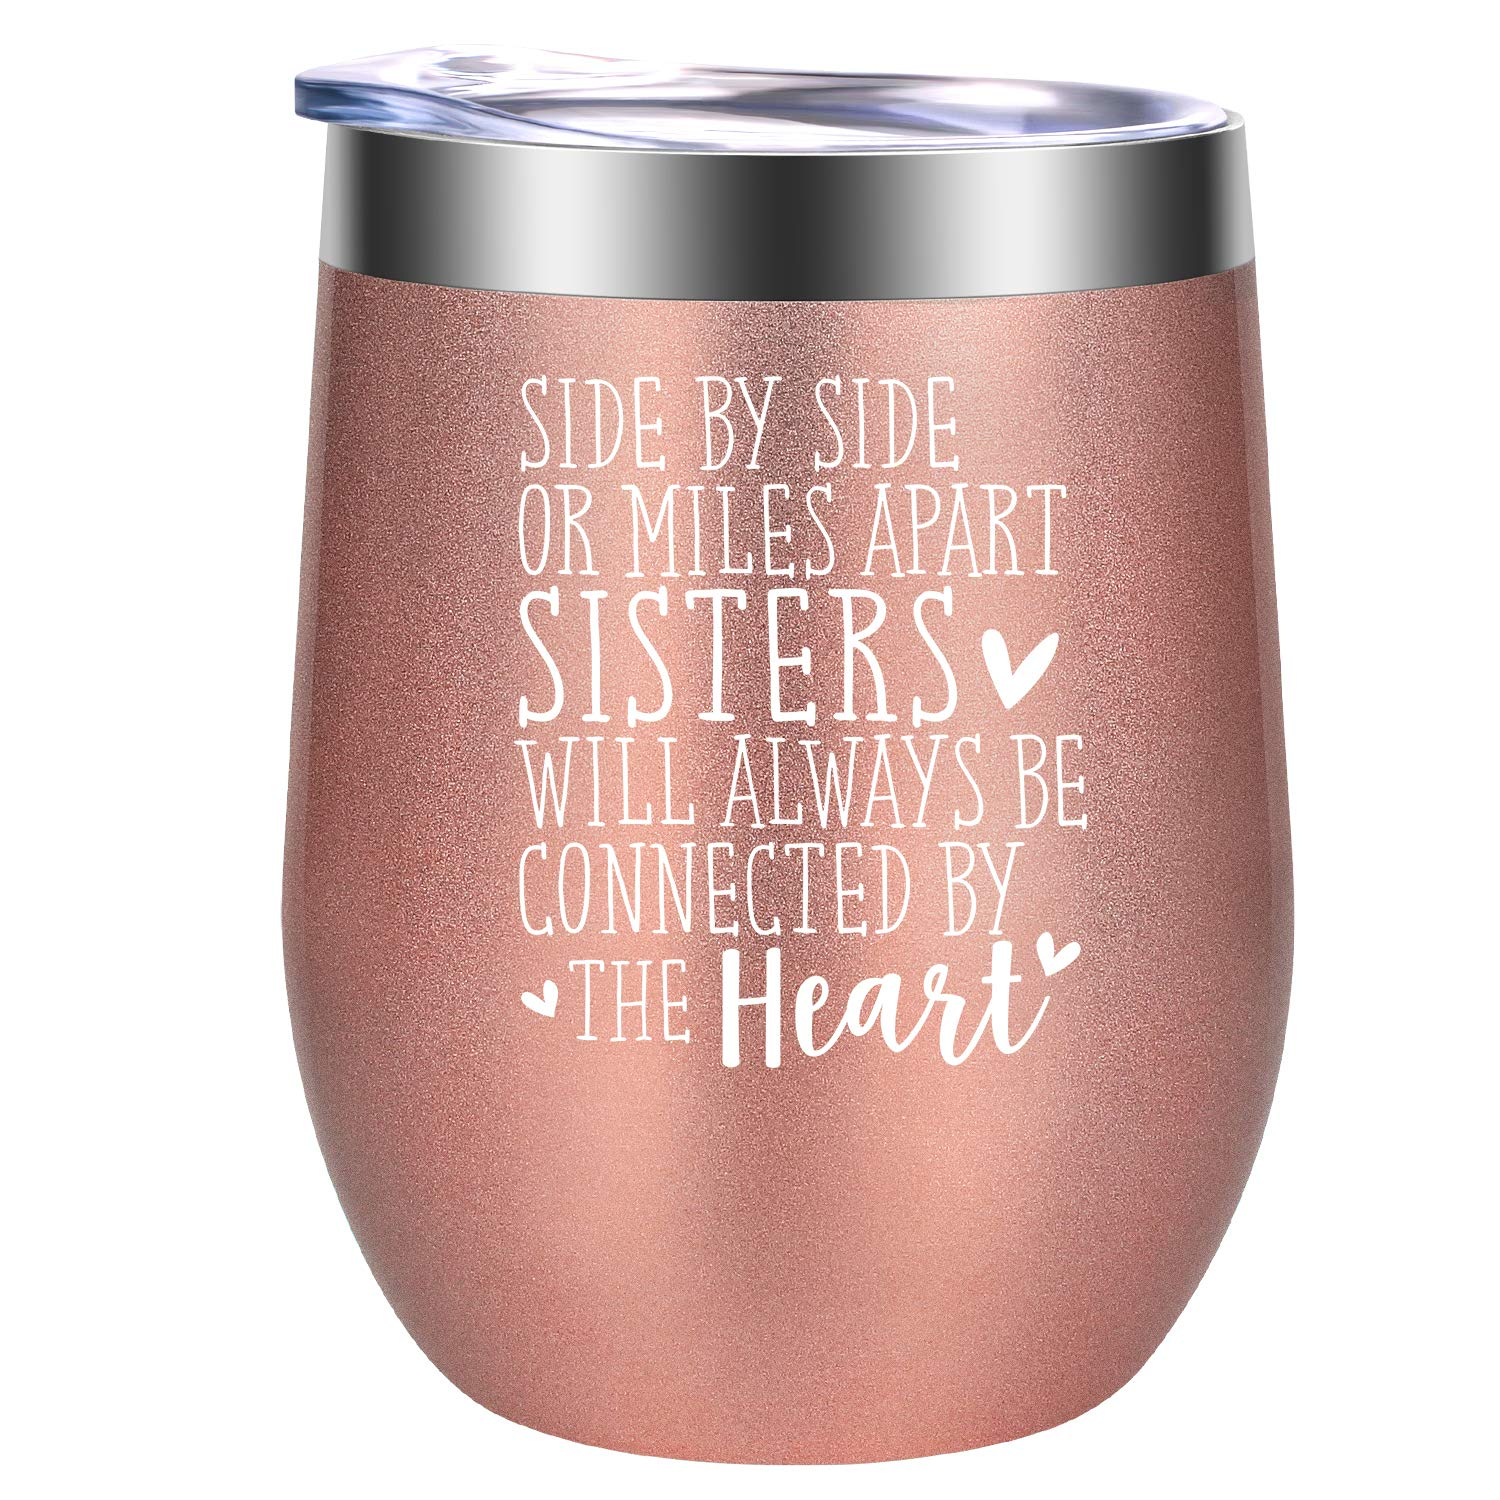 Side by Side or Miles Apart Sisters Will Always be Connected by the Heart - Sister Gifts from Sister - Best Birthday Gift for Big Little Sister, Soul Sister, Best Friend, Bestie - GSPY Wine Tumbler by GSPY